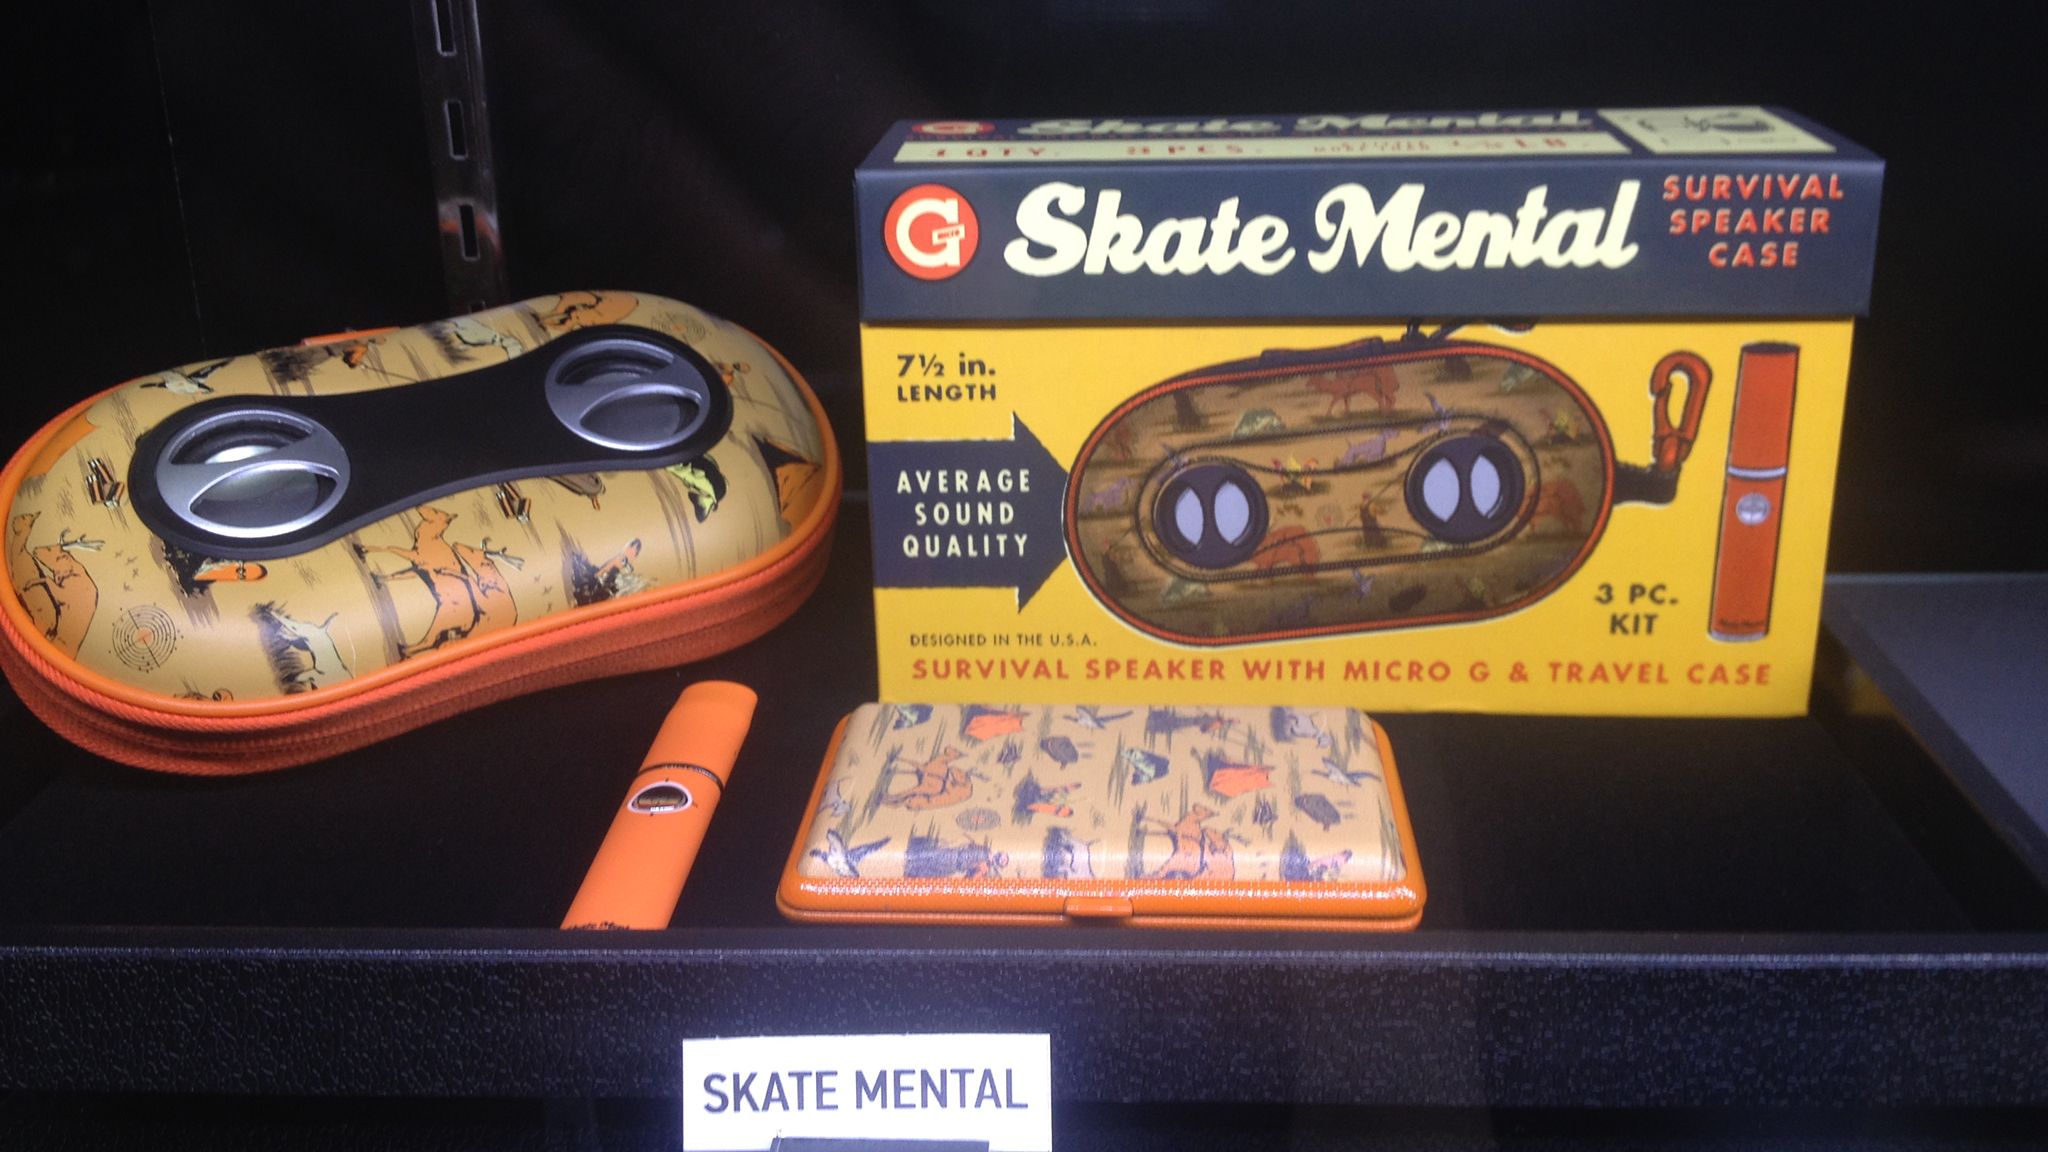 The latest Skate Mental/Grenco Science collaboration, a portable speaker and travel case.